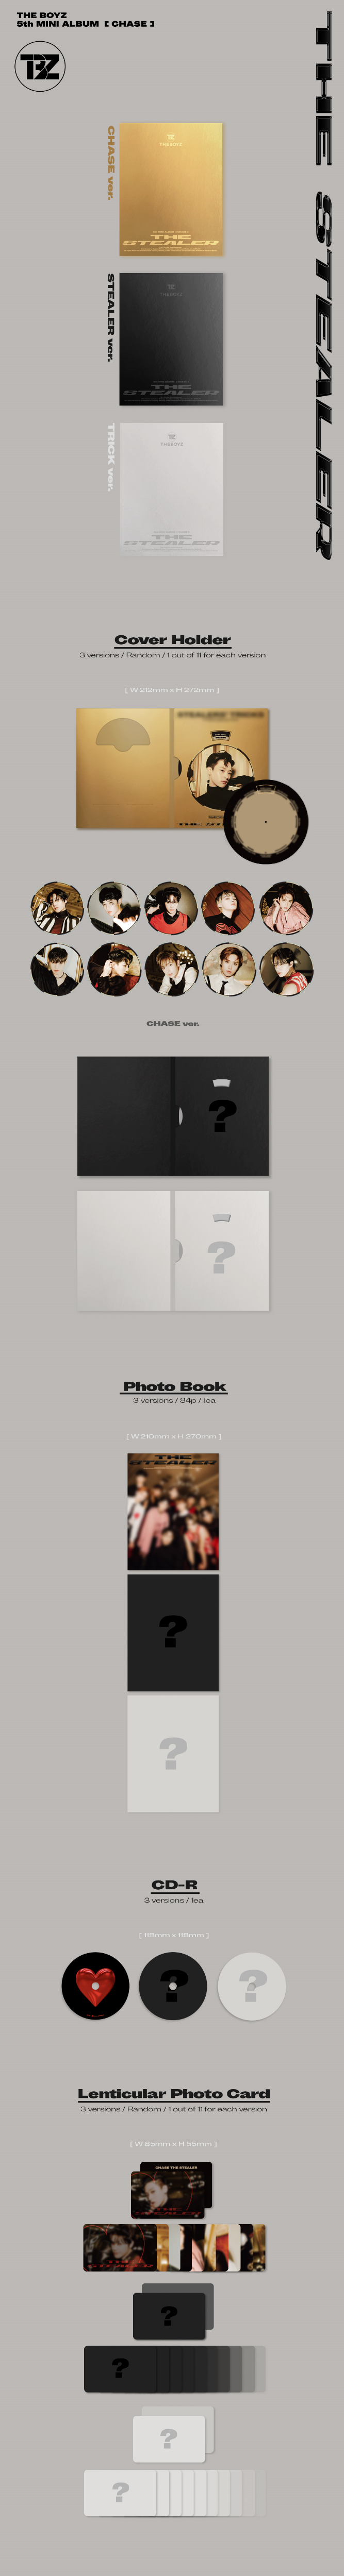 The Boyz - CHASE [5th Mini Album] Product Details